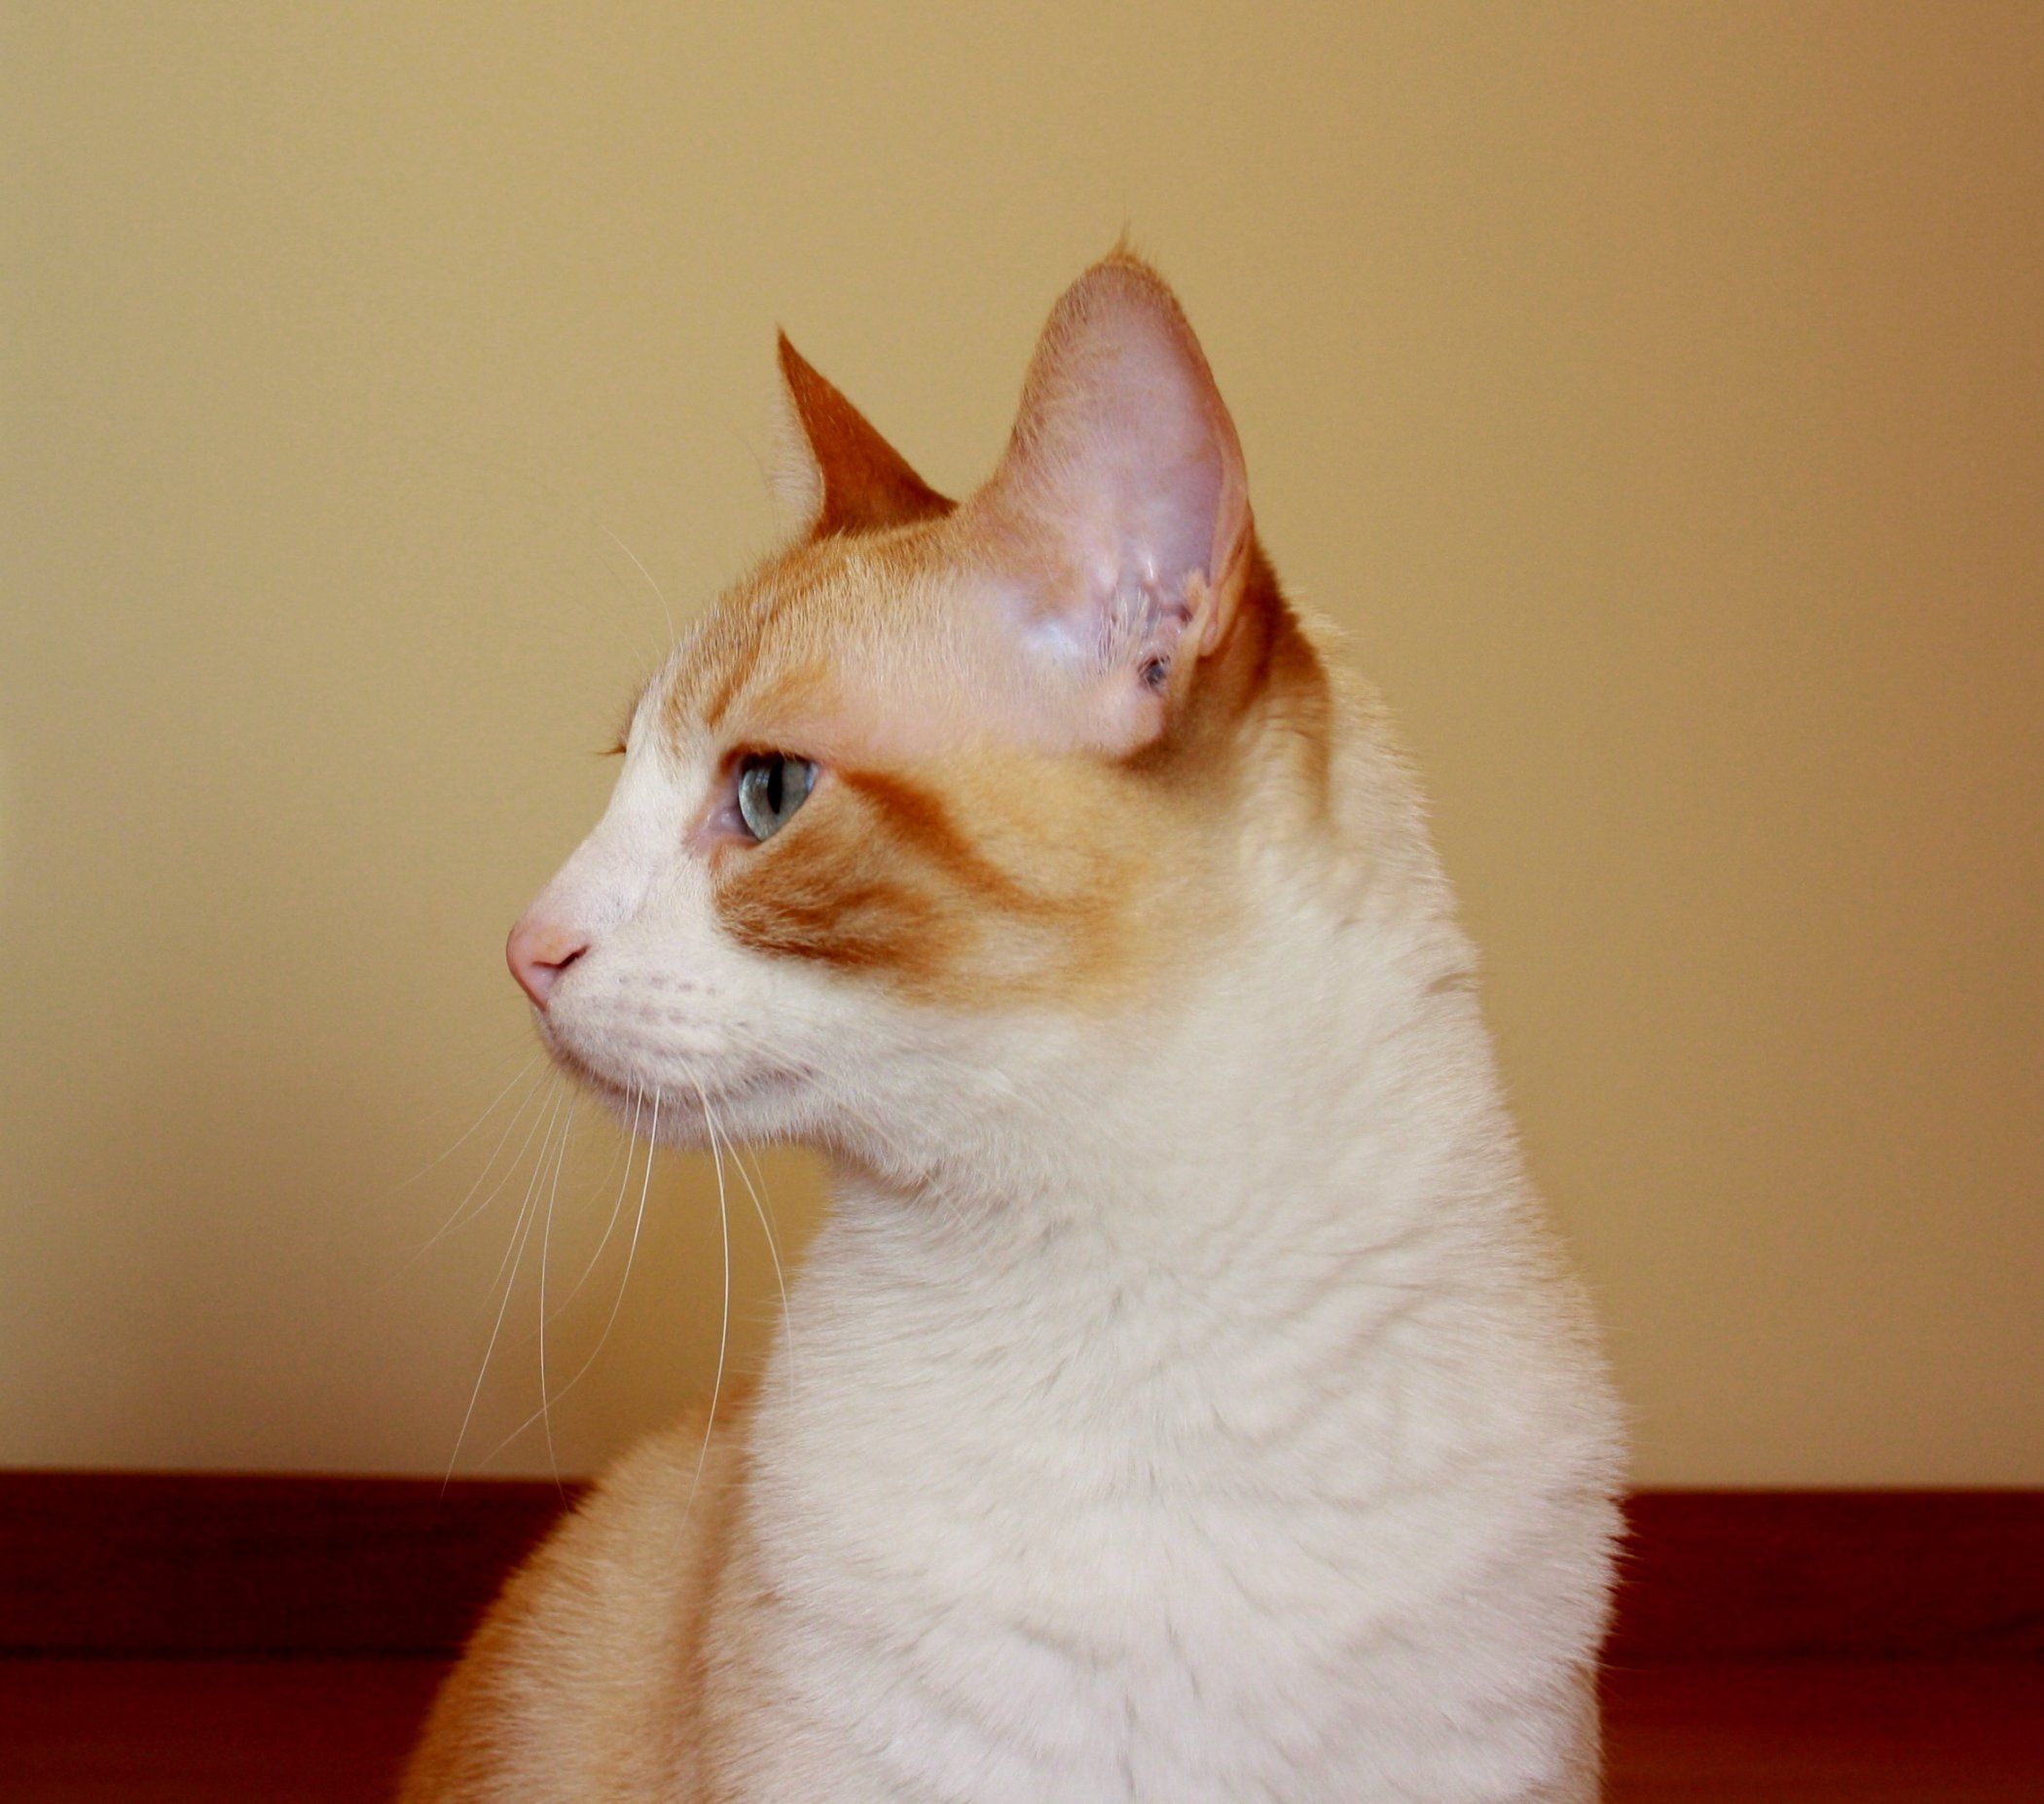 Purrsday Poetry: Mr. Cat